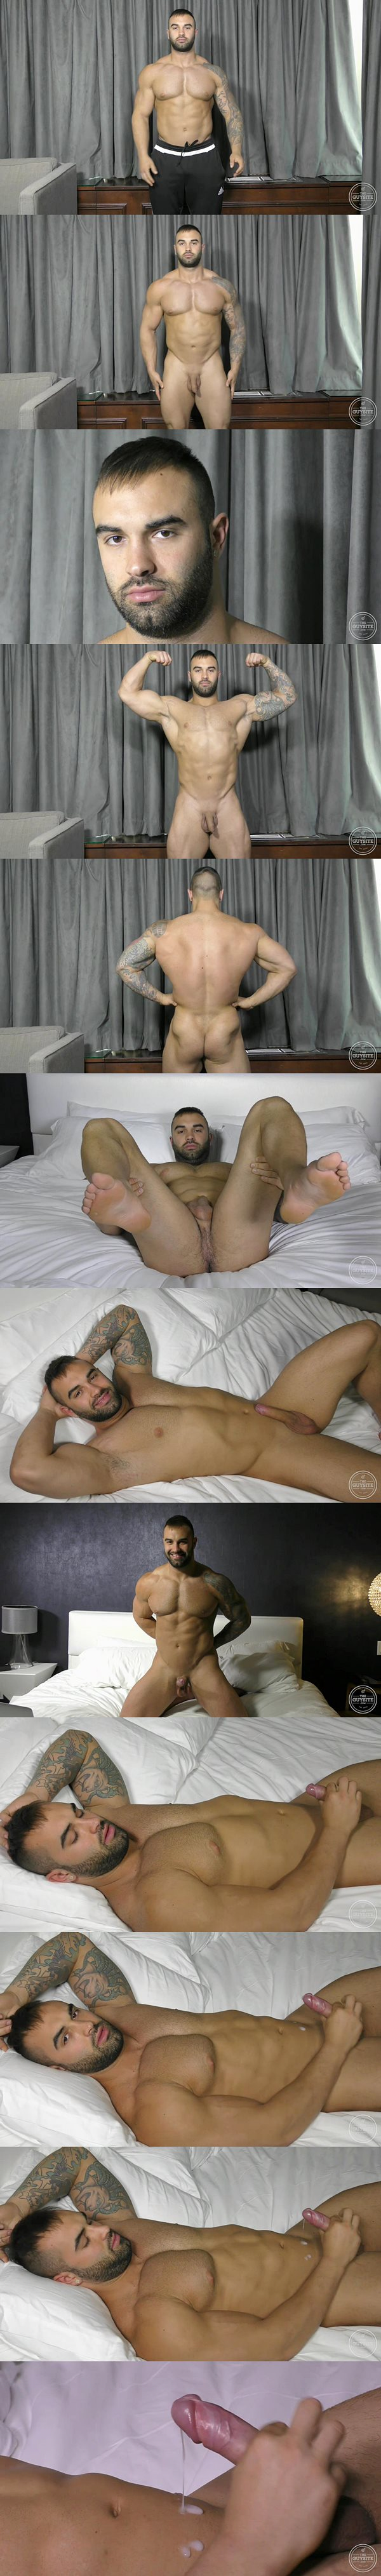 Masculine French-Canadian beefy stud Calvin shoots his creamy load at Theguysite